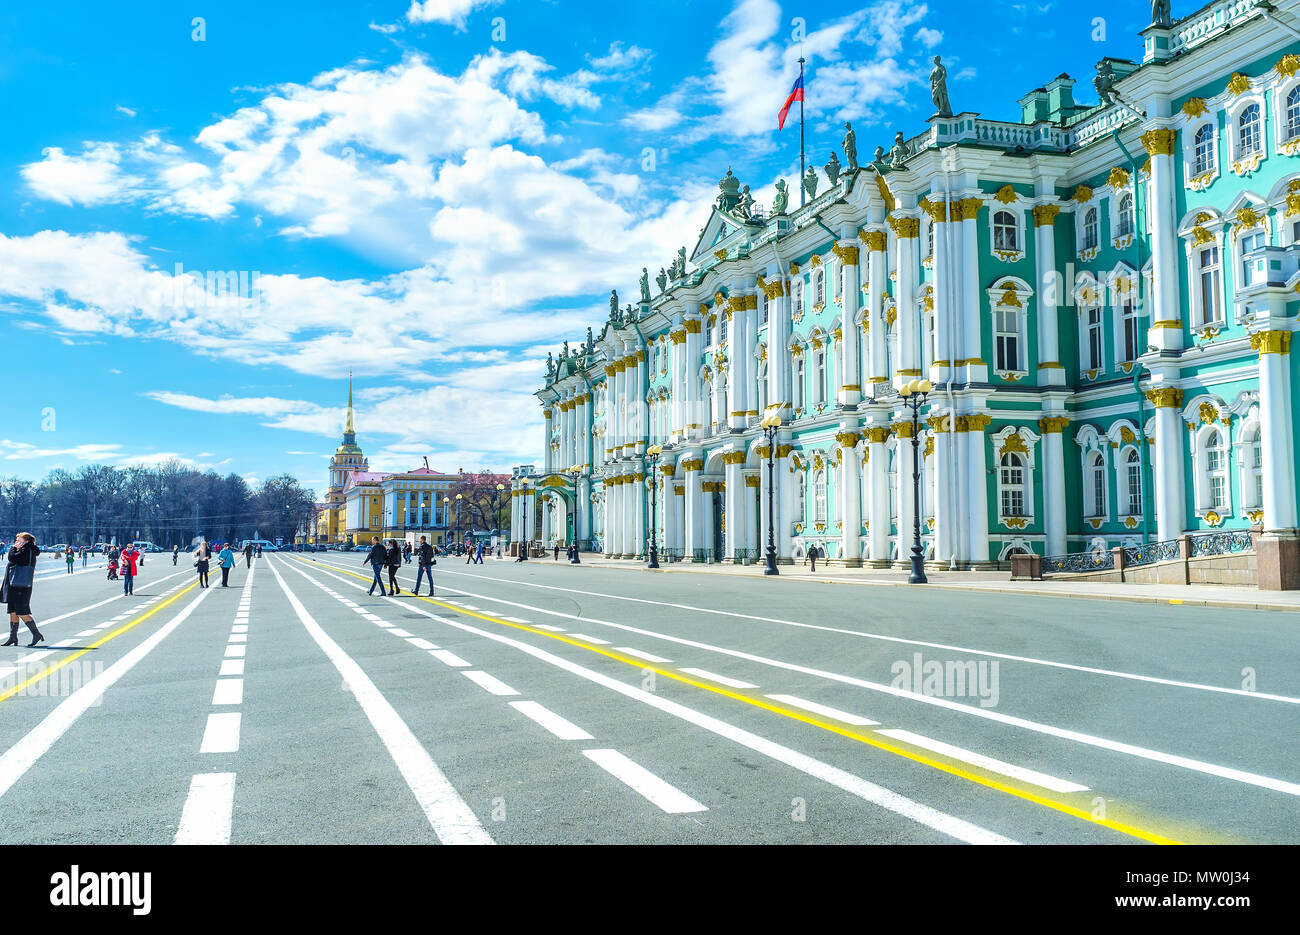 SAINT PETERSBURG, RUSSIA - APRIL 27, 2015: The Palace Square was the main square in former Russian Empire and was a location of main events, on April  - Stock Image